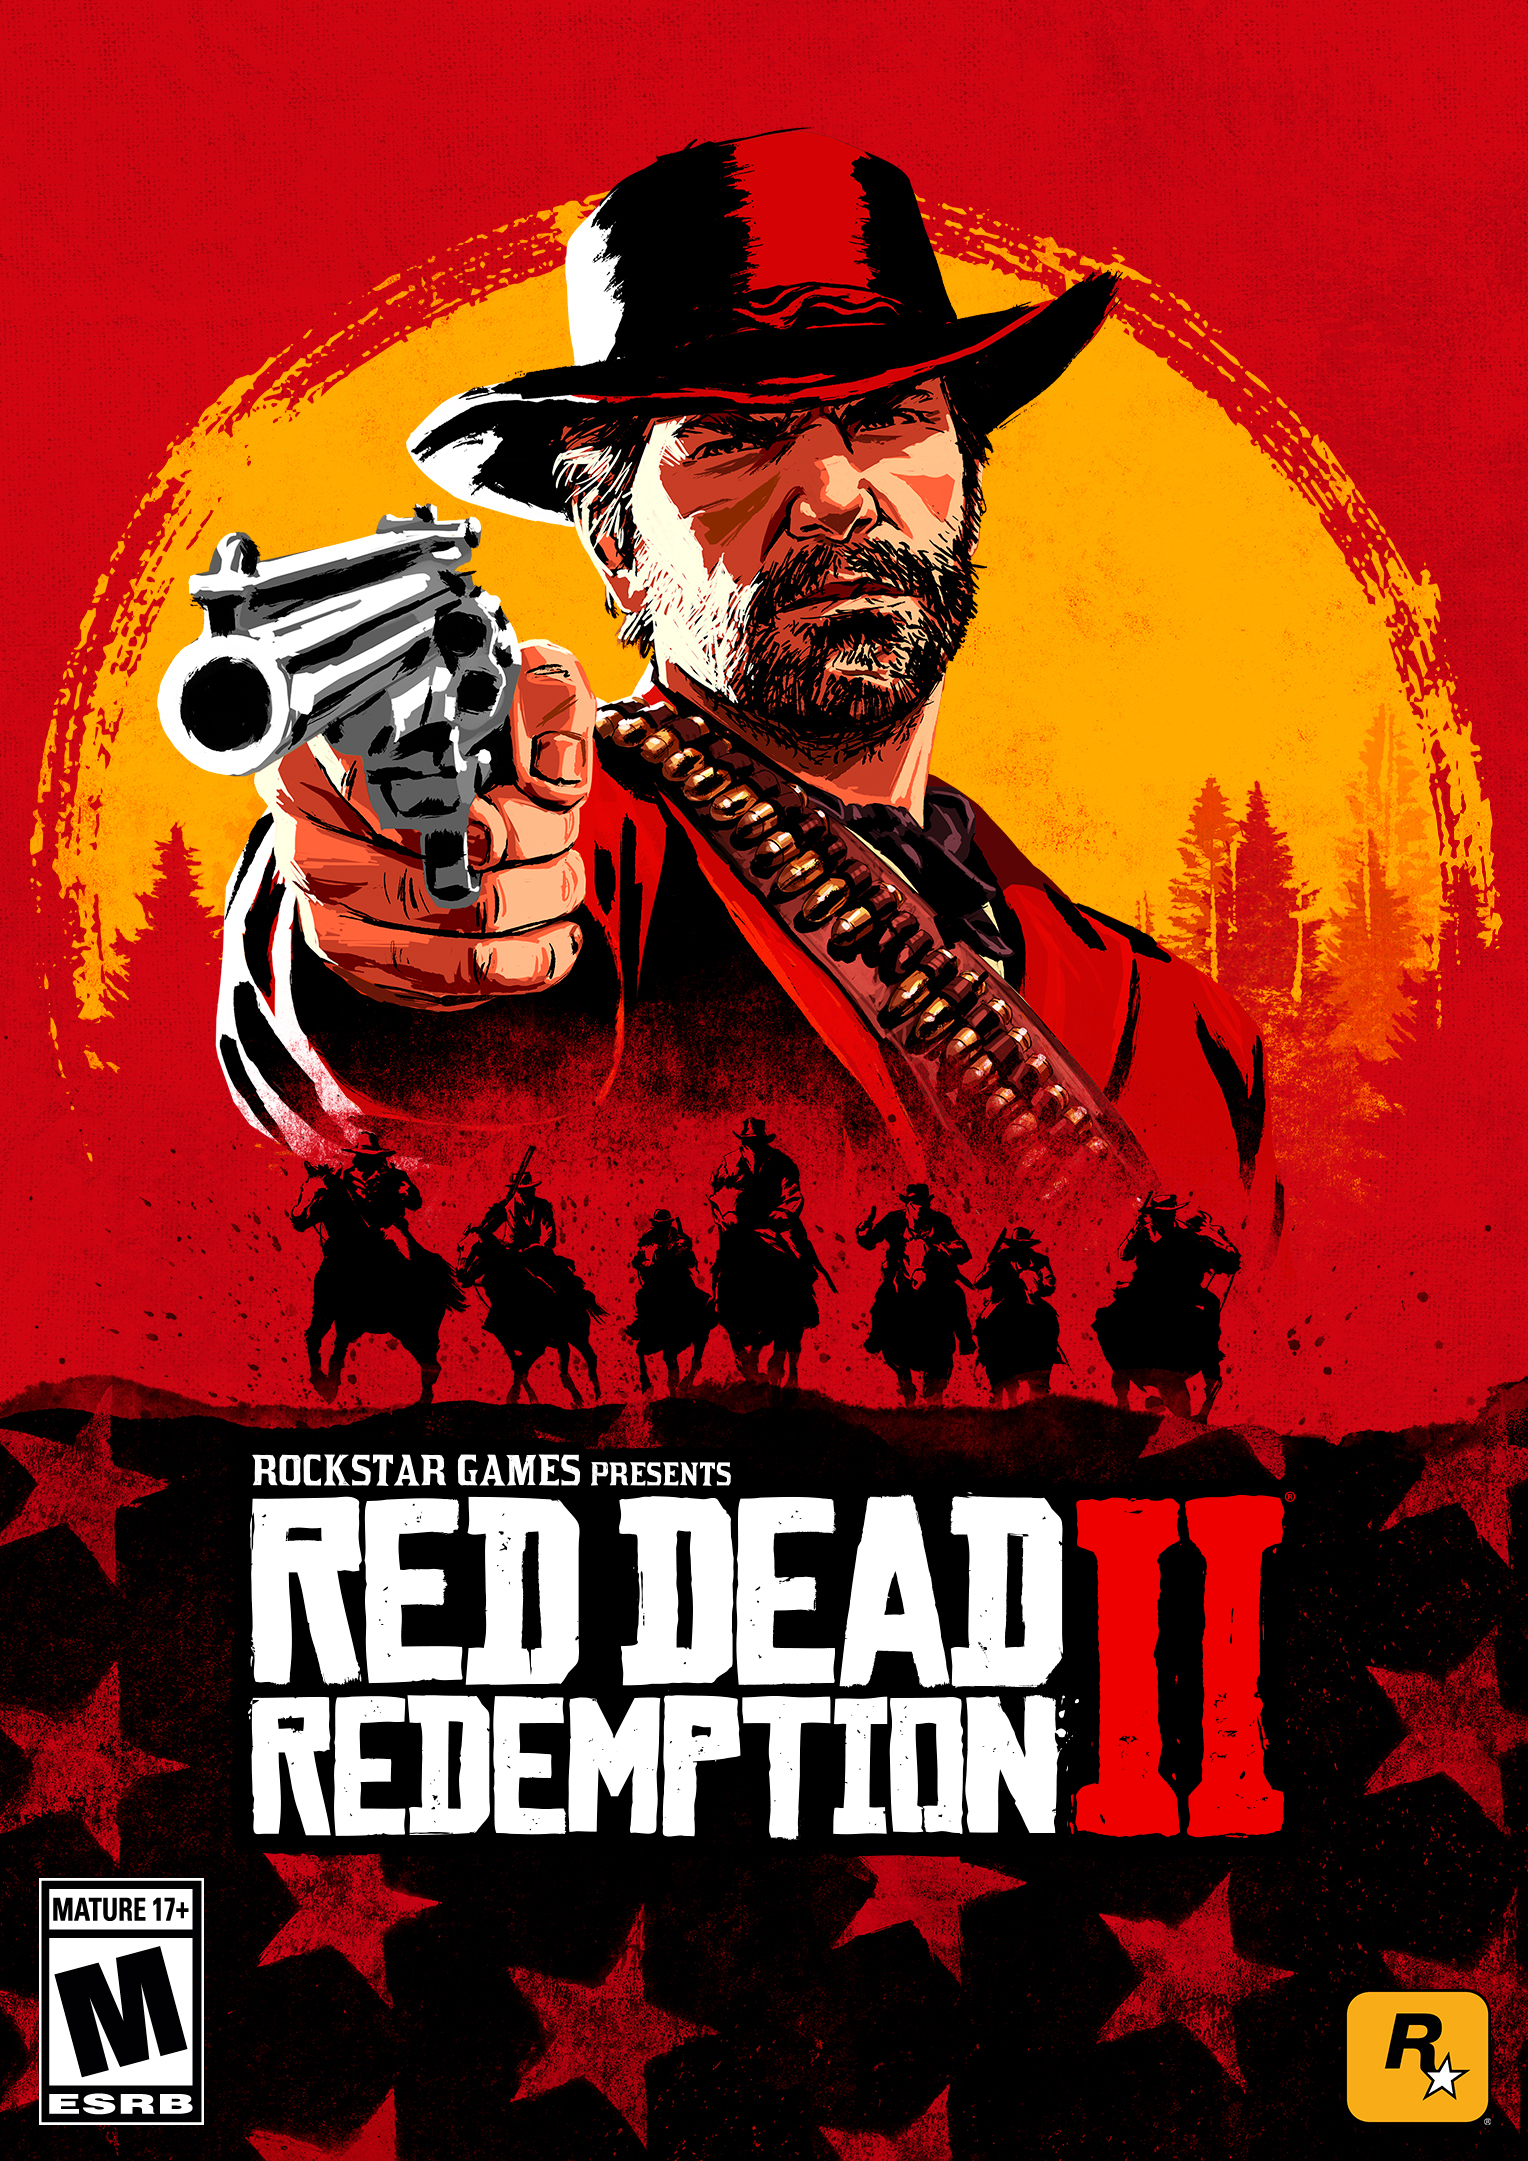 red dead redemption 2 achieves entertainment s biggest opening